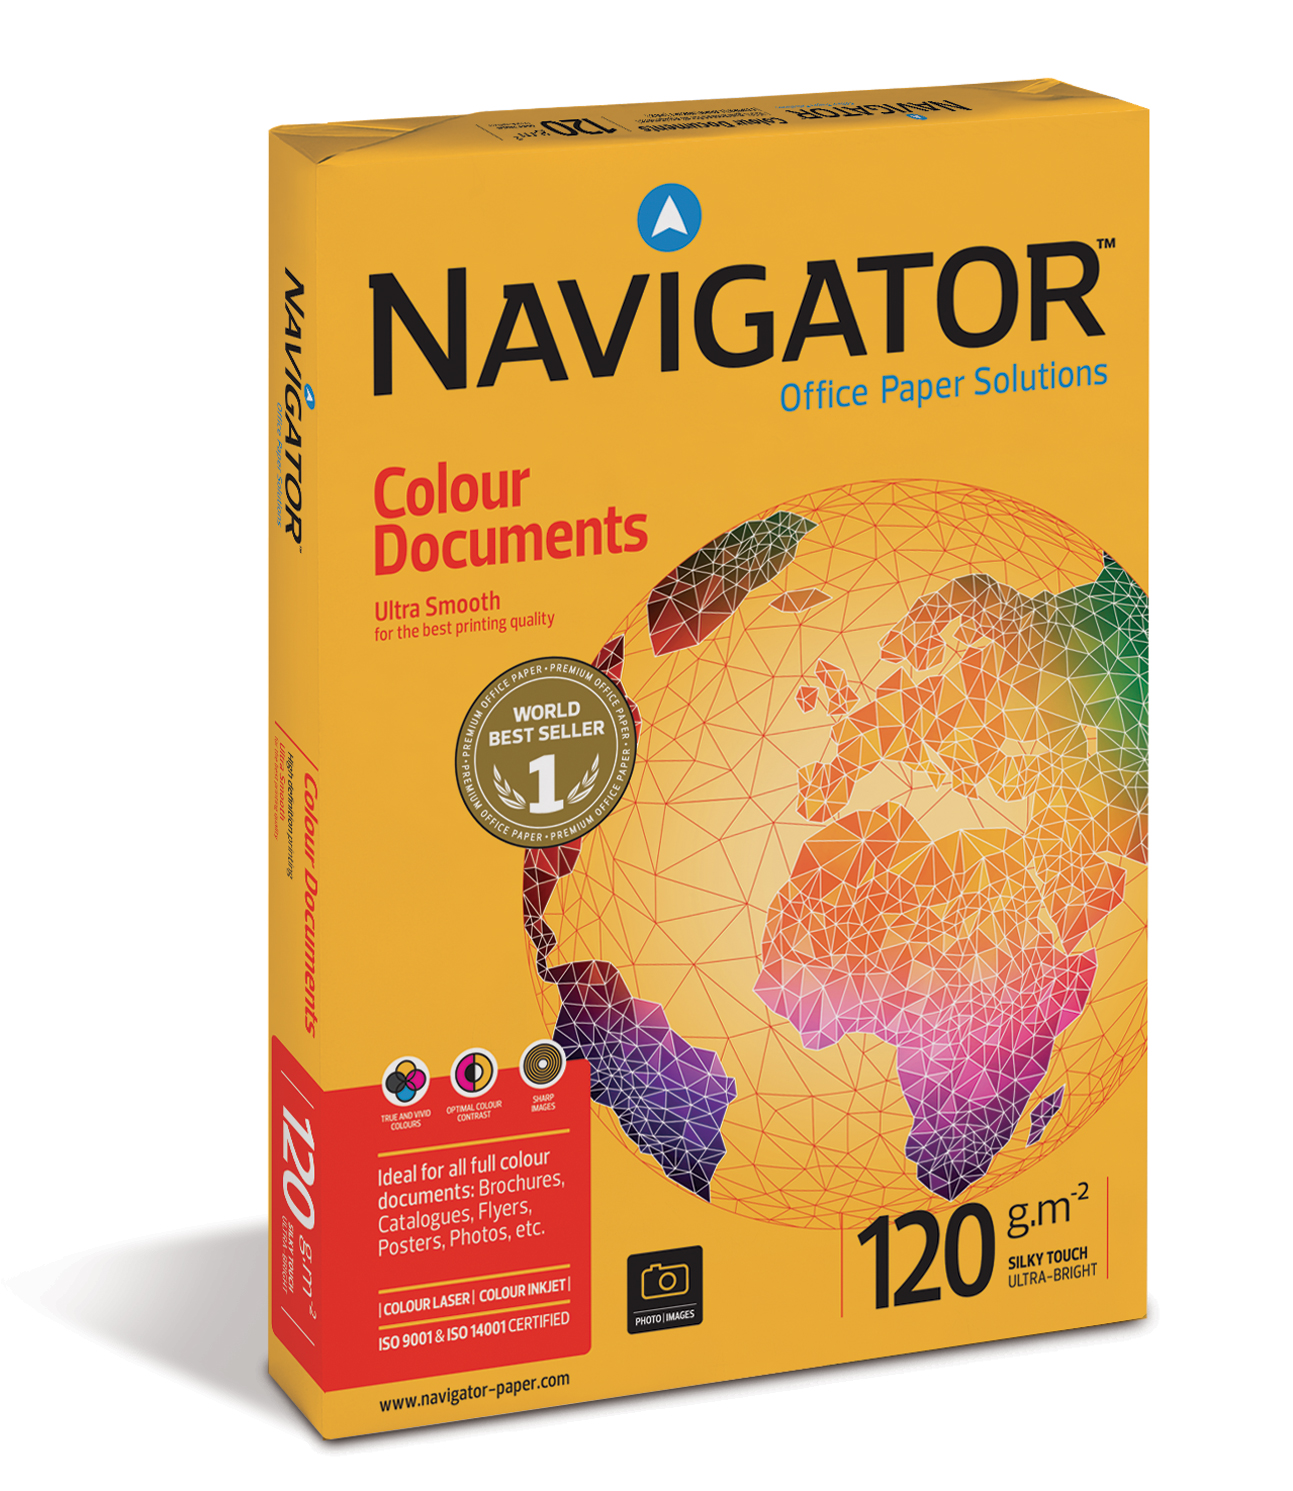 Navigator Color Documents 120g/m² DIN-A3